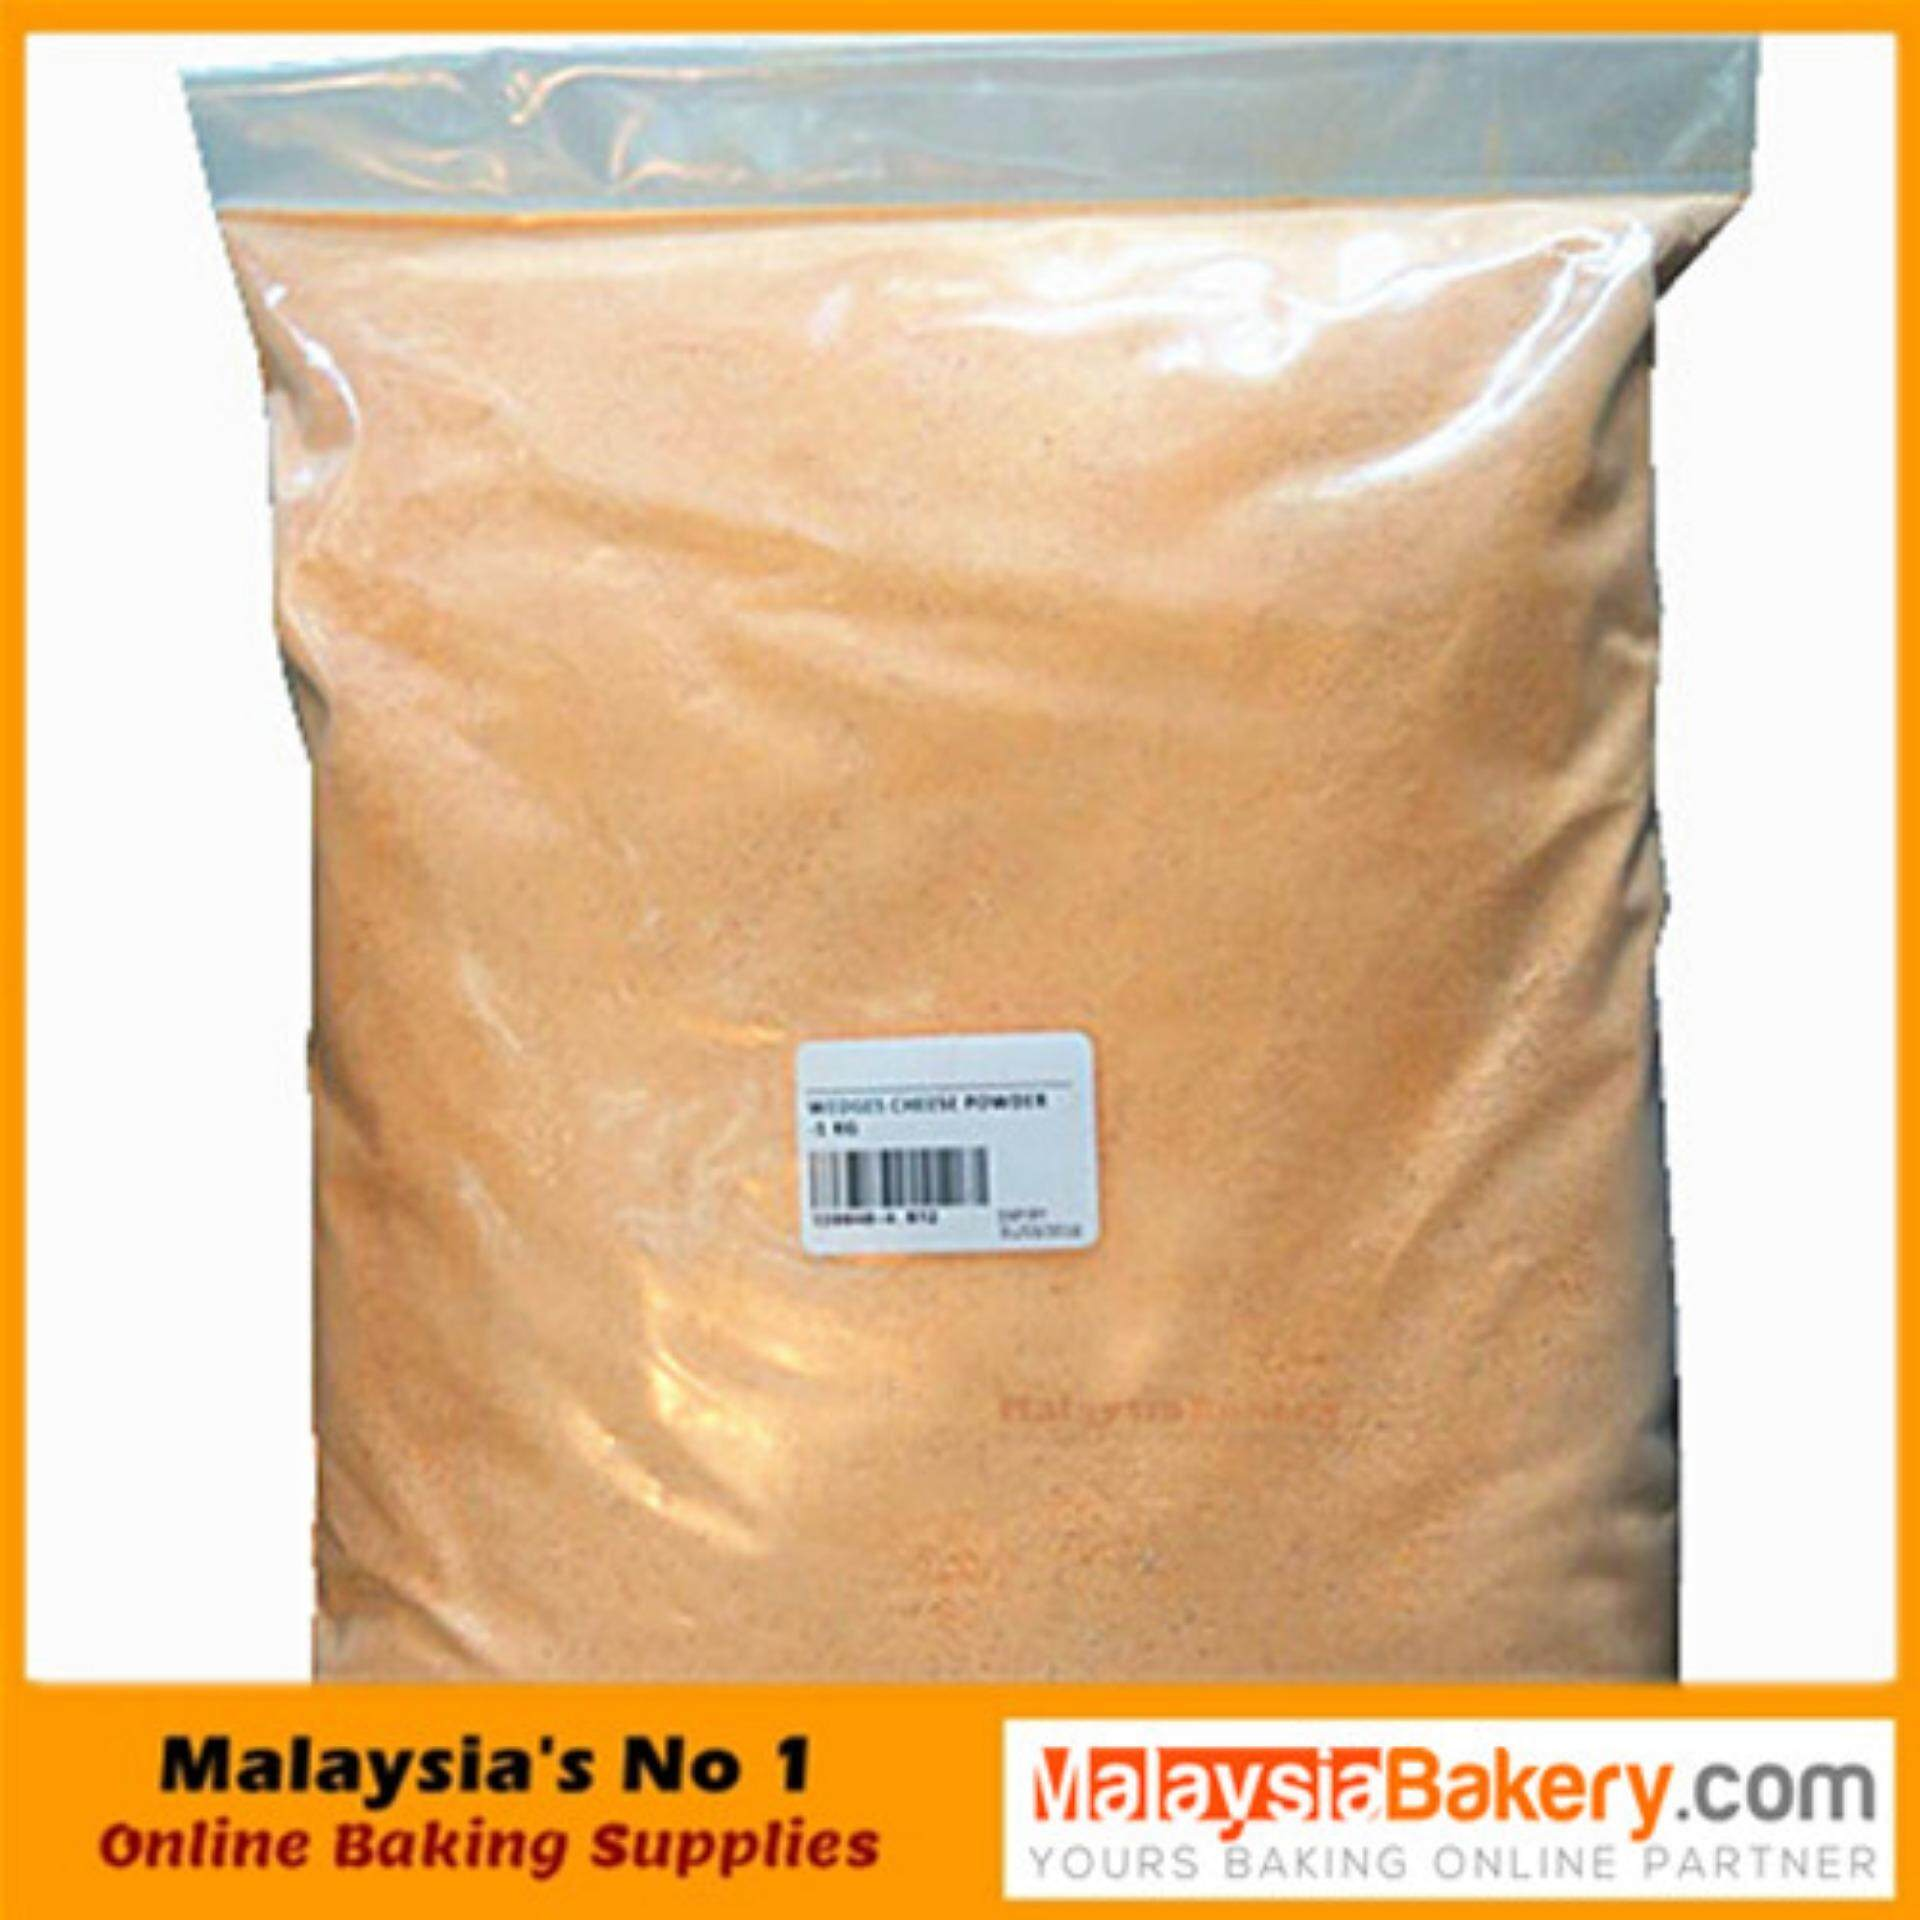 Wedges Cheese Powder (nacho) 0.1 Kg By Malaysiabakery.com.